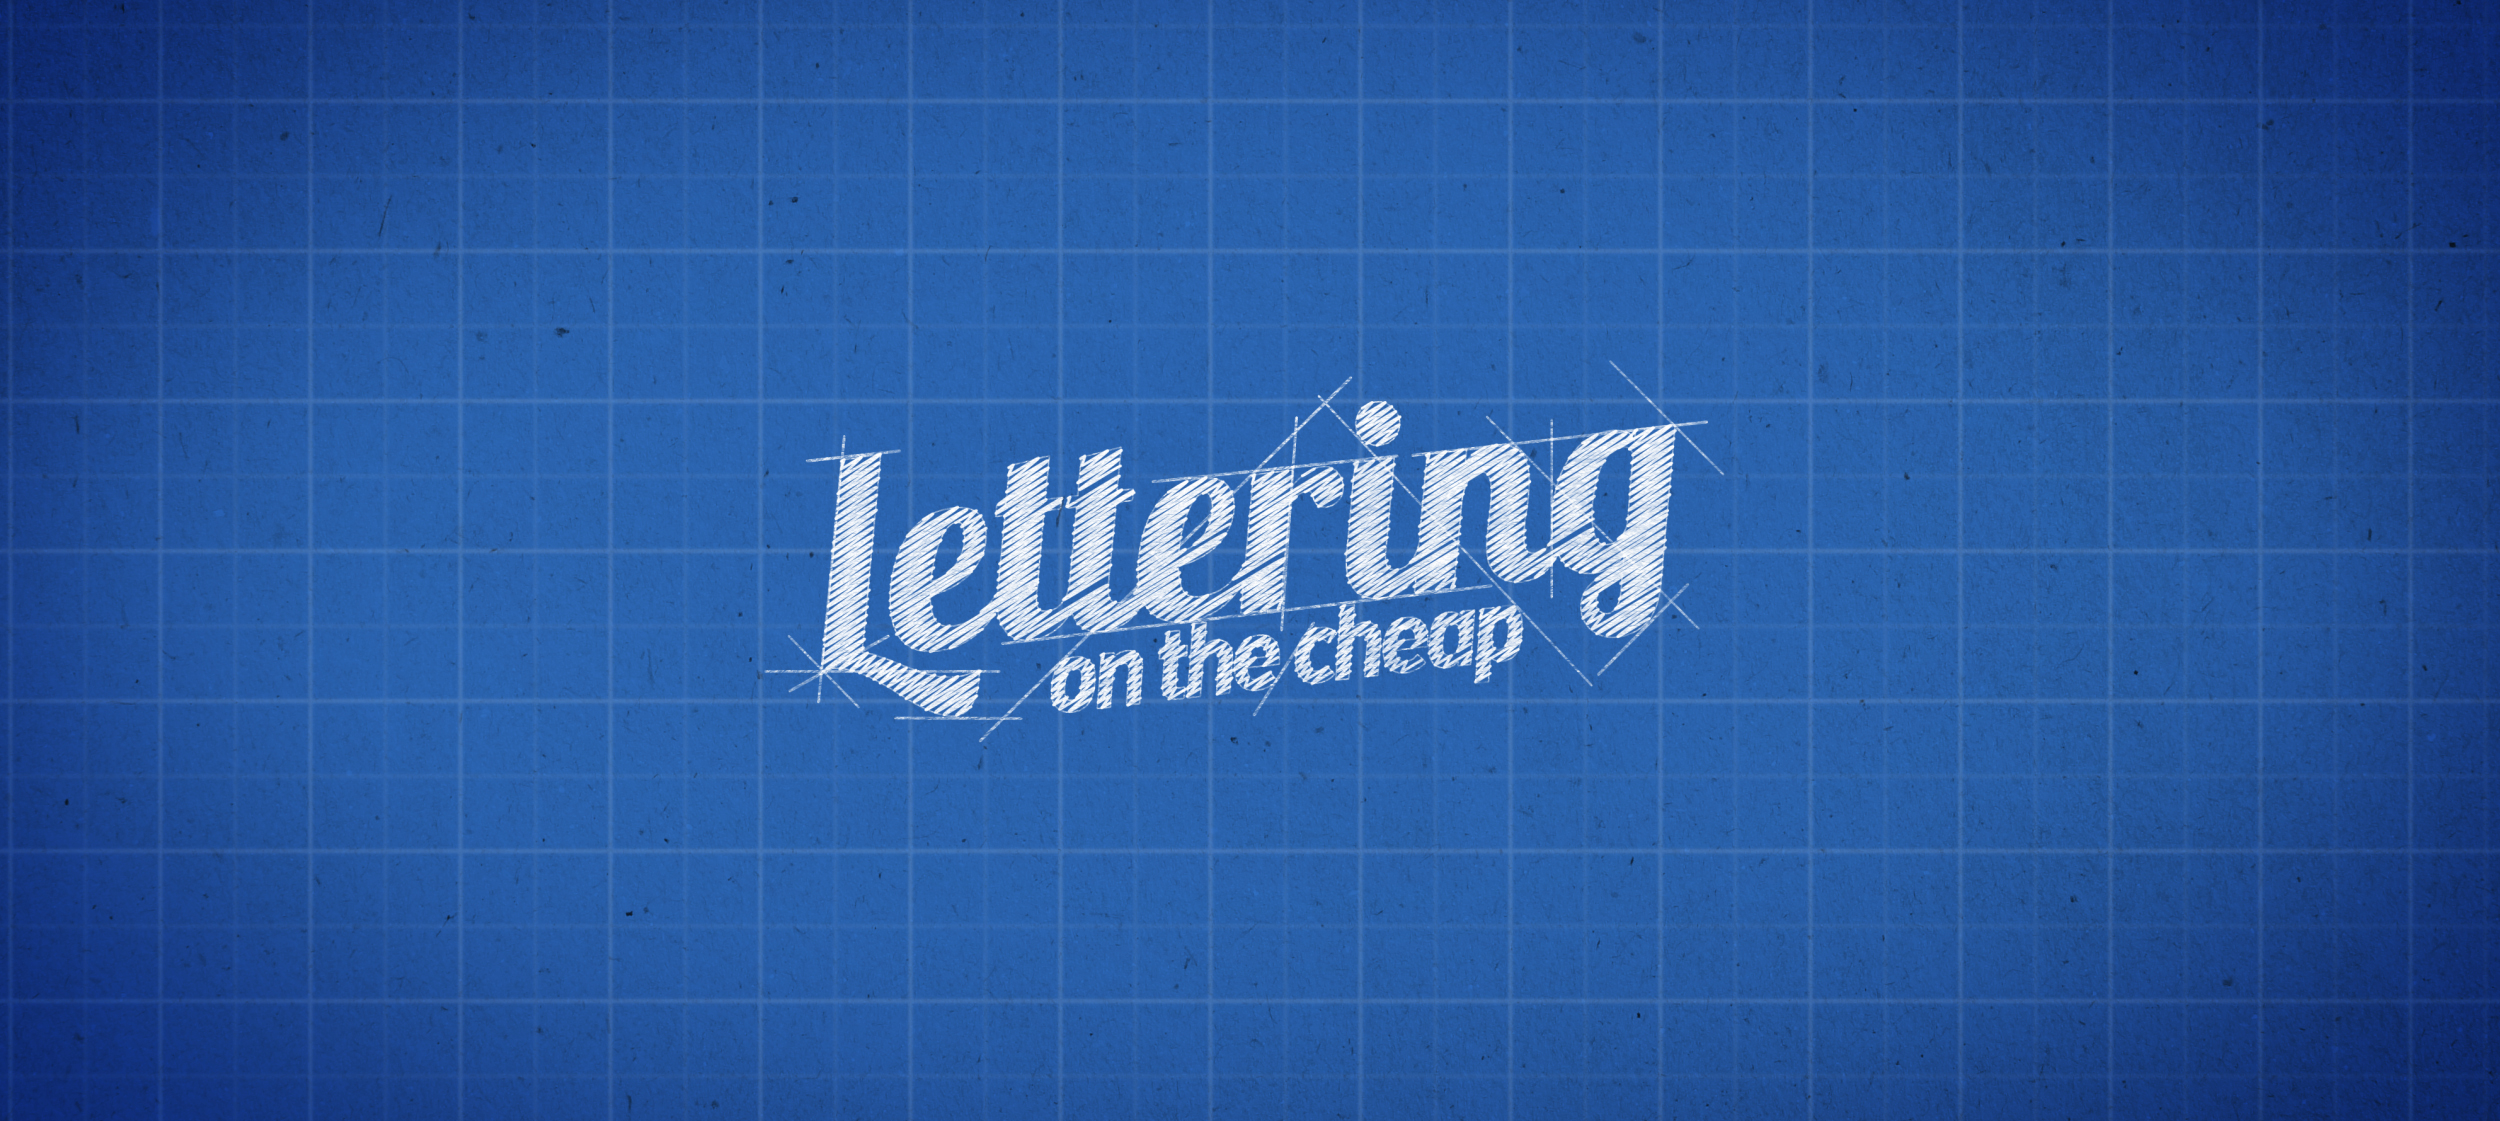 lettering on the cheap logo